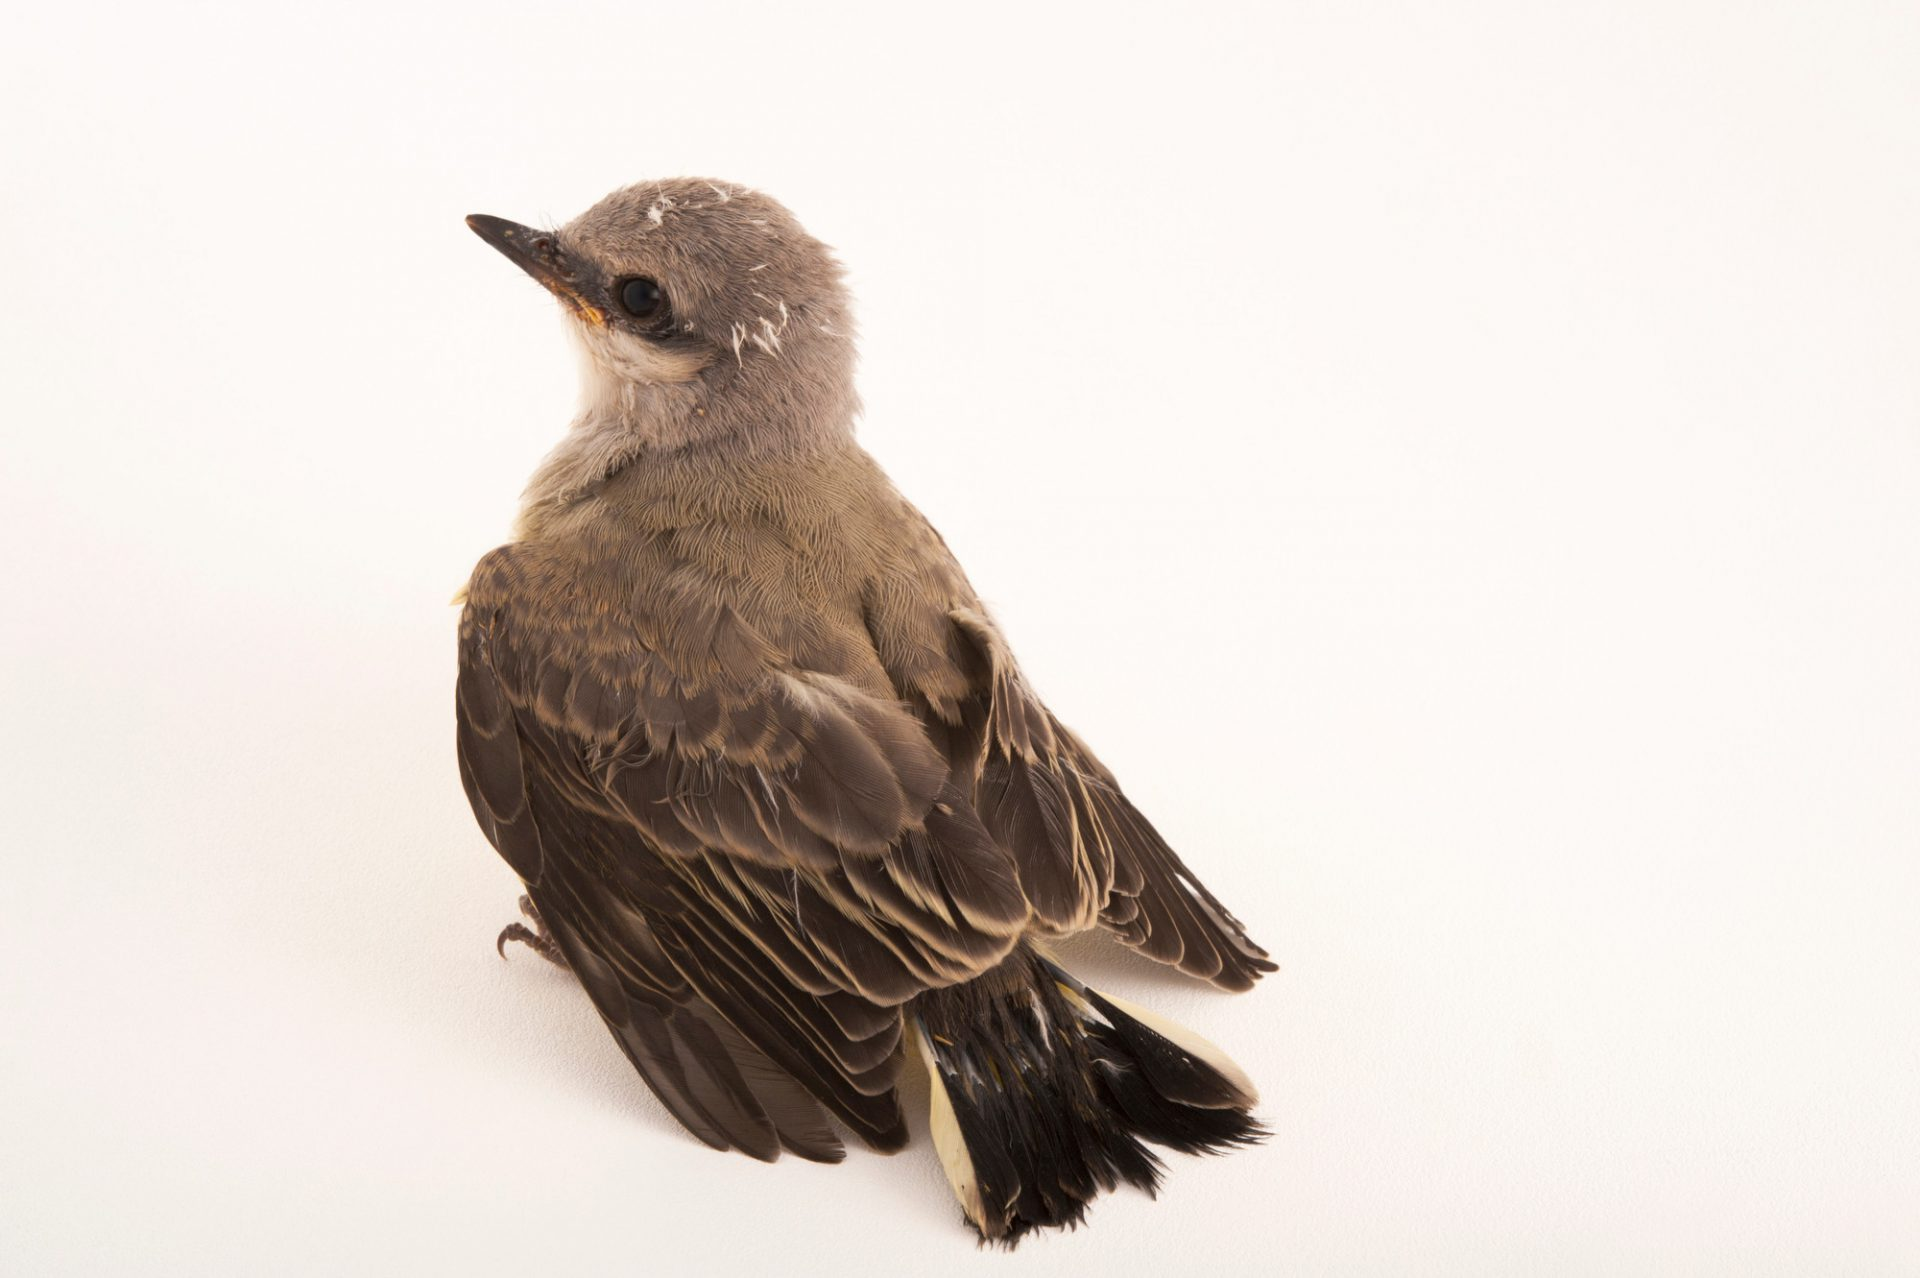 Western kingbird chick, Tyrannus verticalis, at the home of wildlife rescuer in Lincoln, Nebraska.